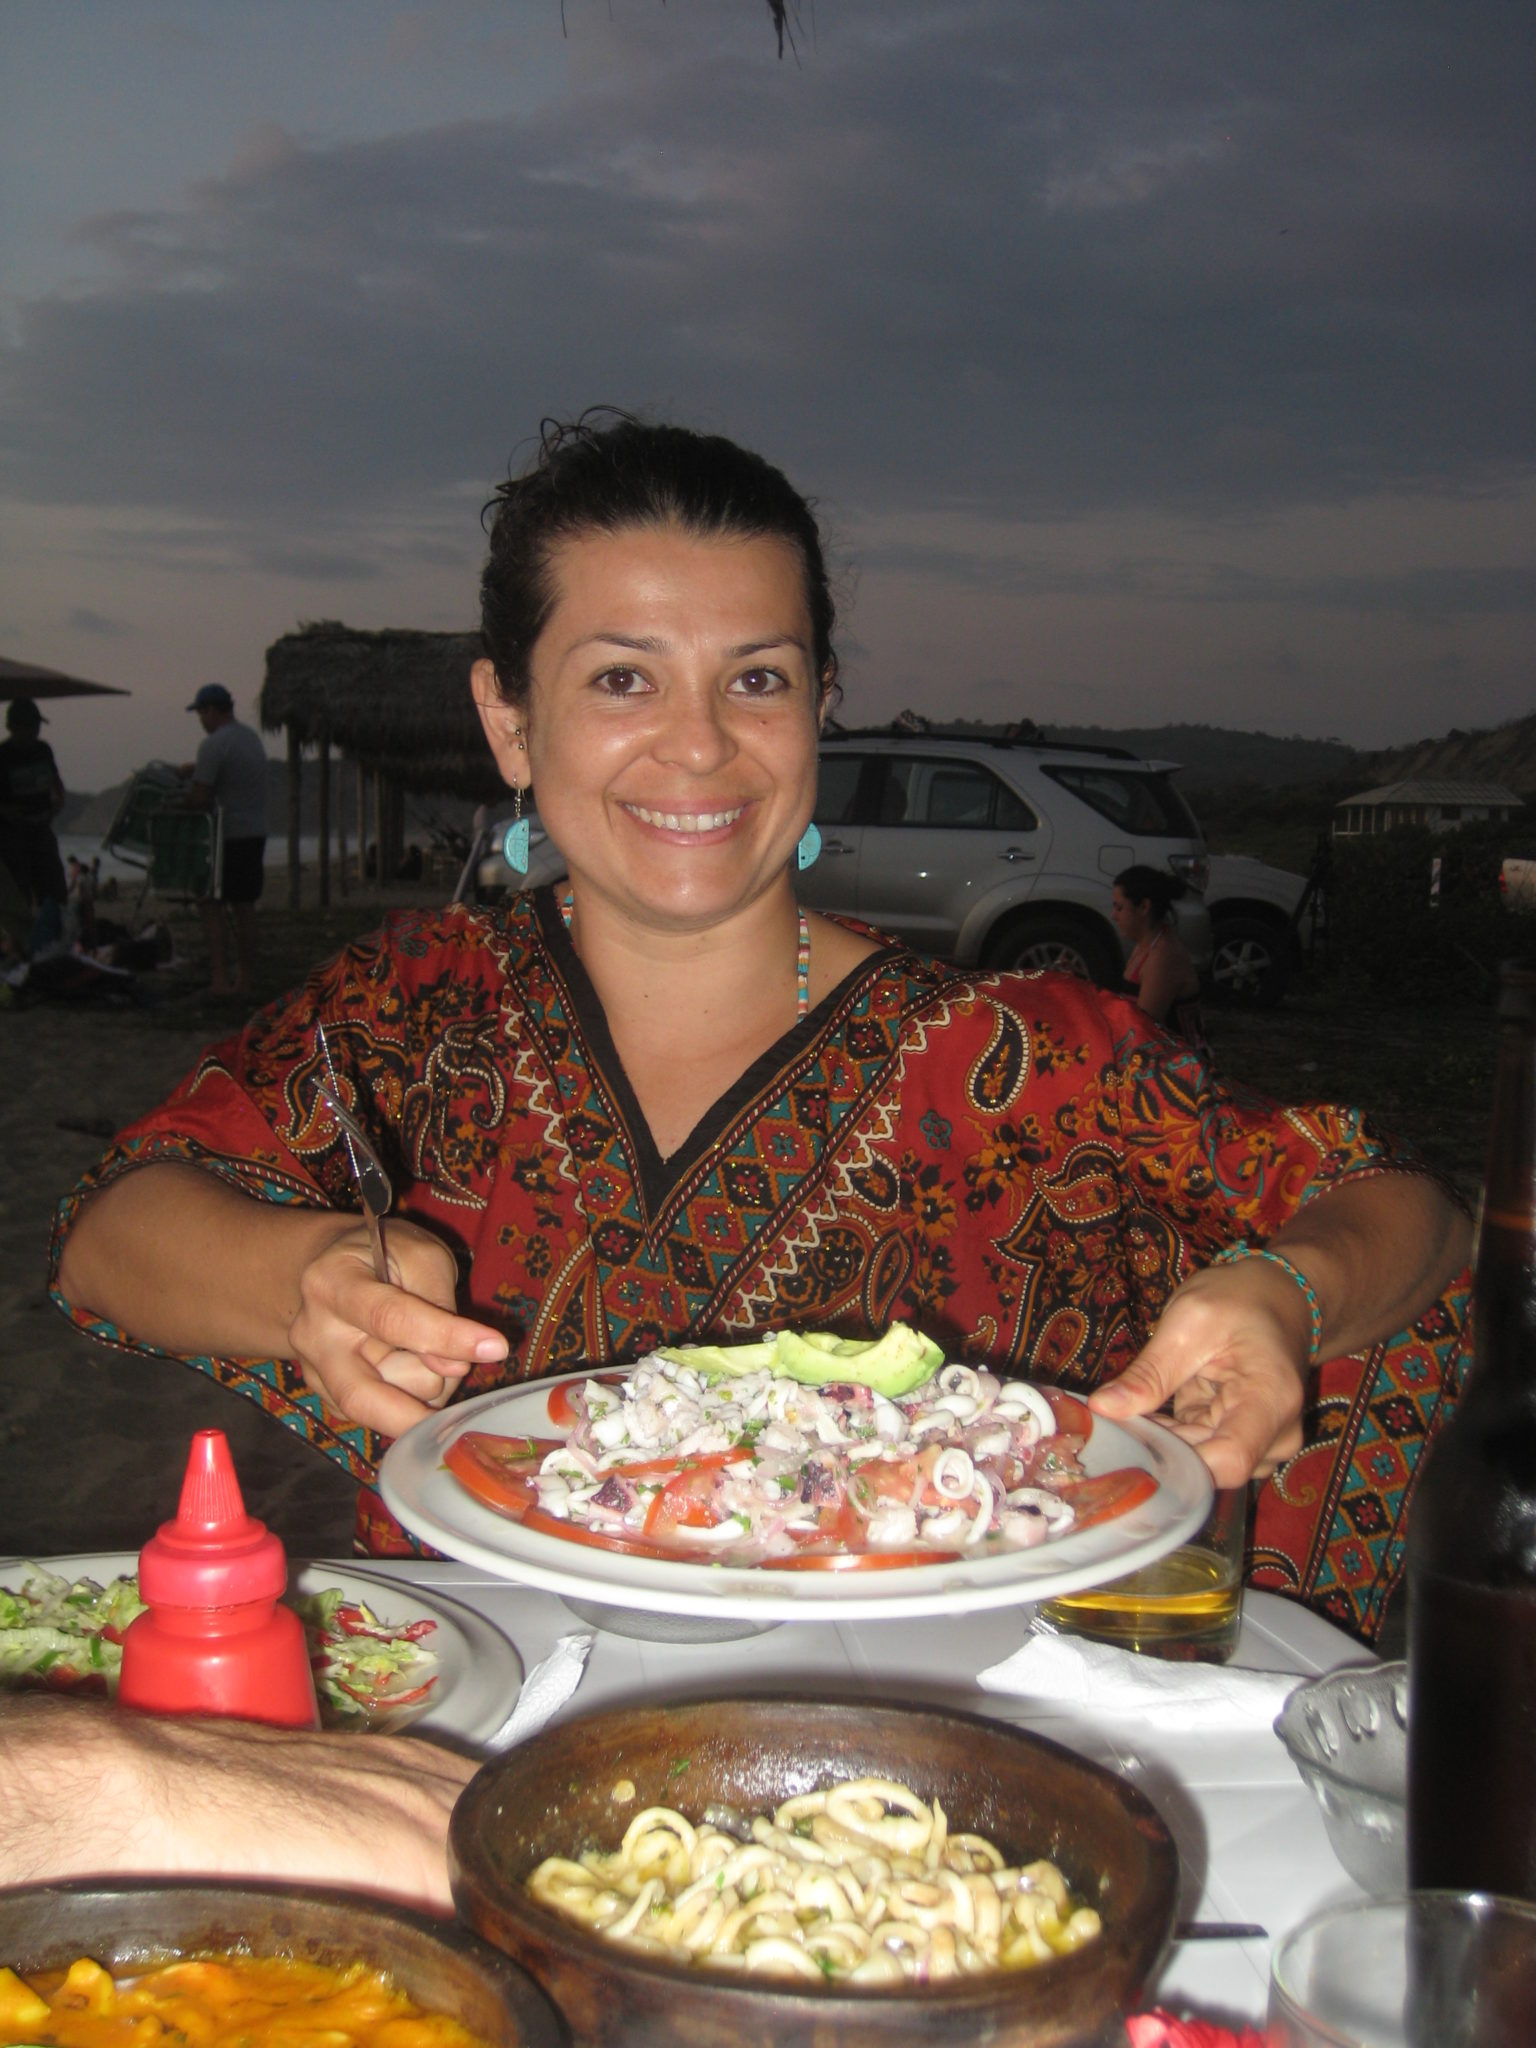 Our Ecuadorian friend, Maria Olga, with one of the many delicious seafood dishes we ate at the beach.